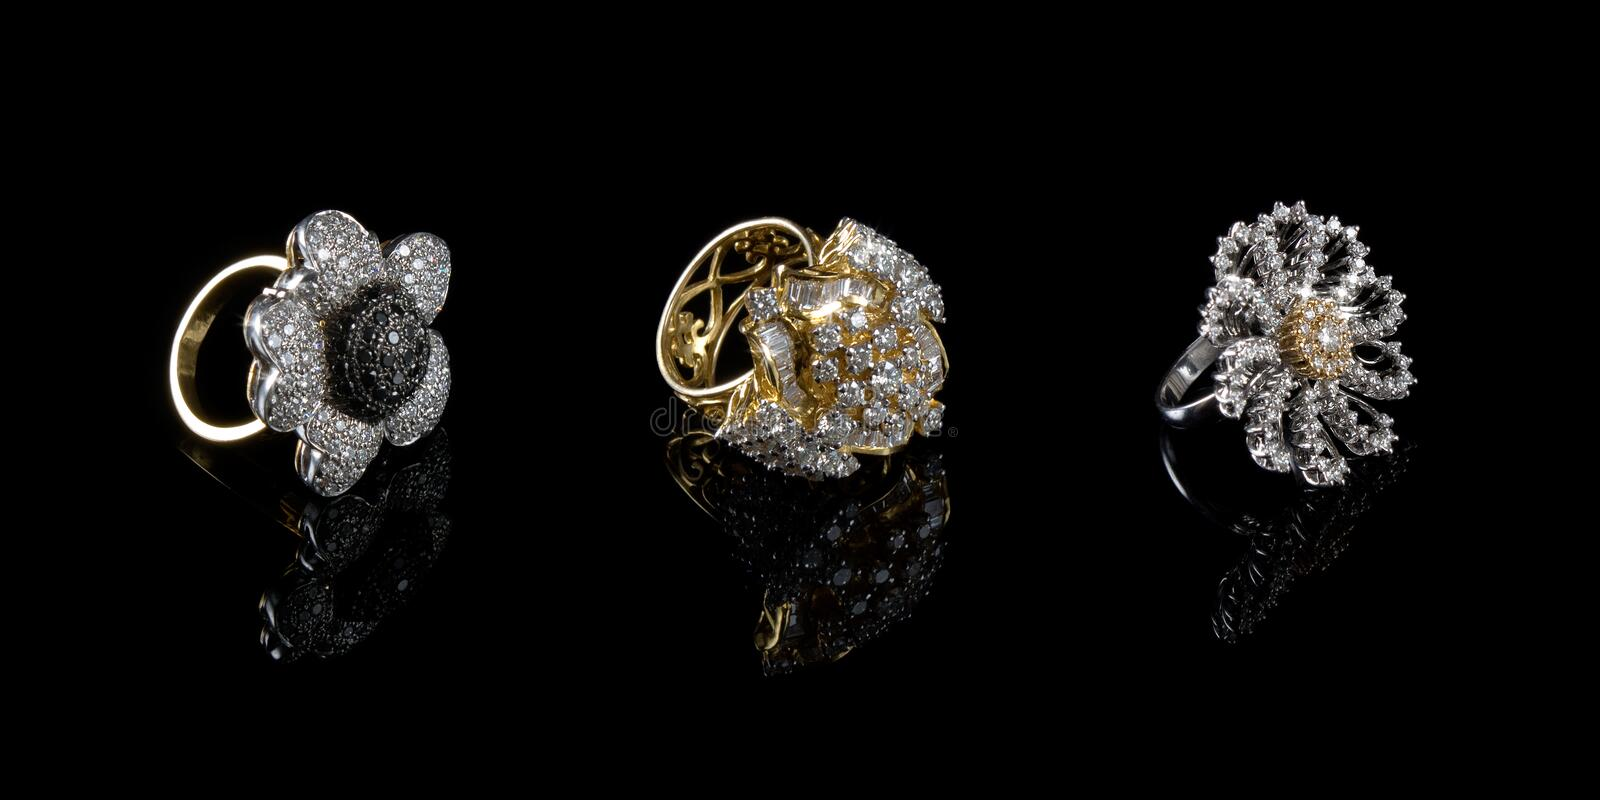 Three (3) Diamond rings stock photos